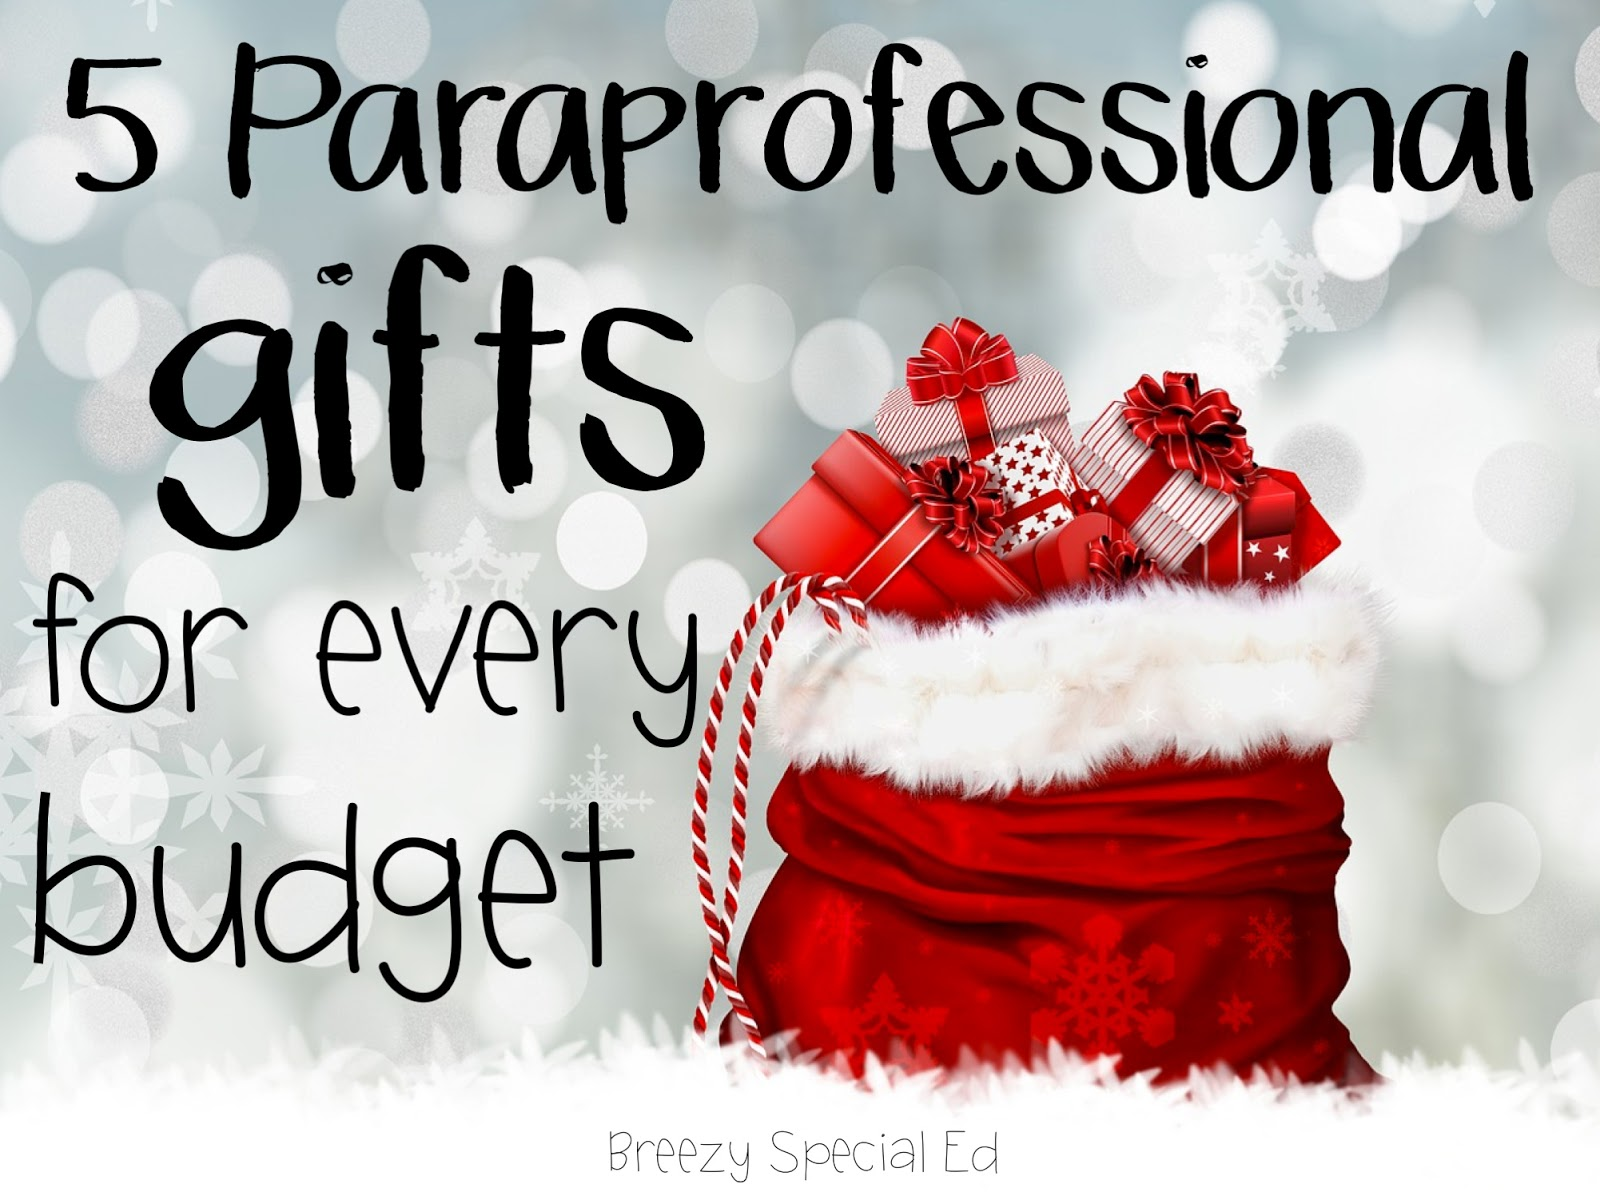 Christmas Gifts for Paraprofessionals - Breezy Special Ed